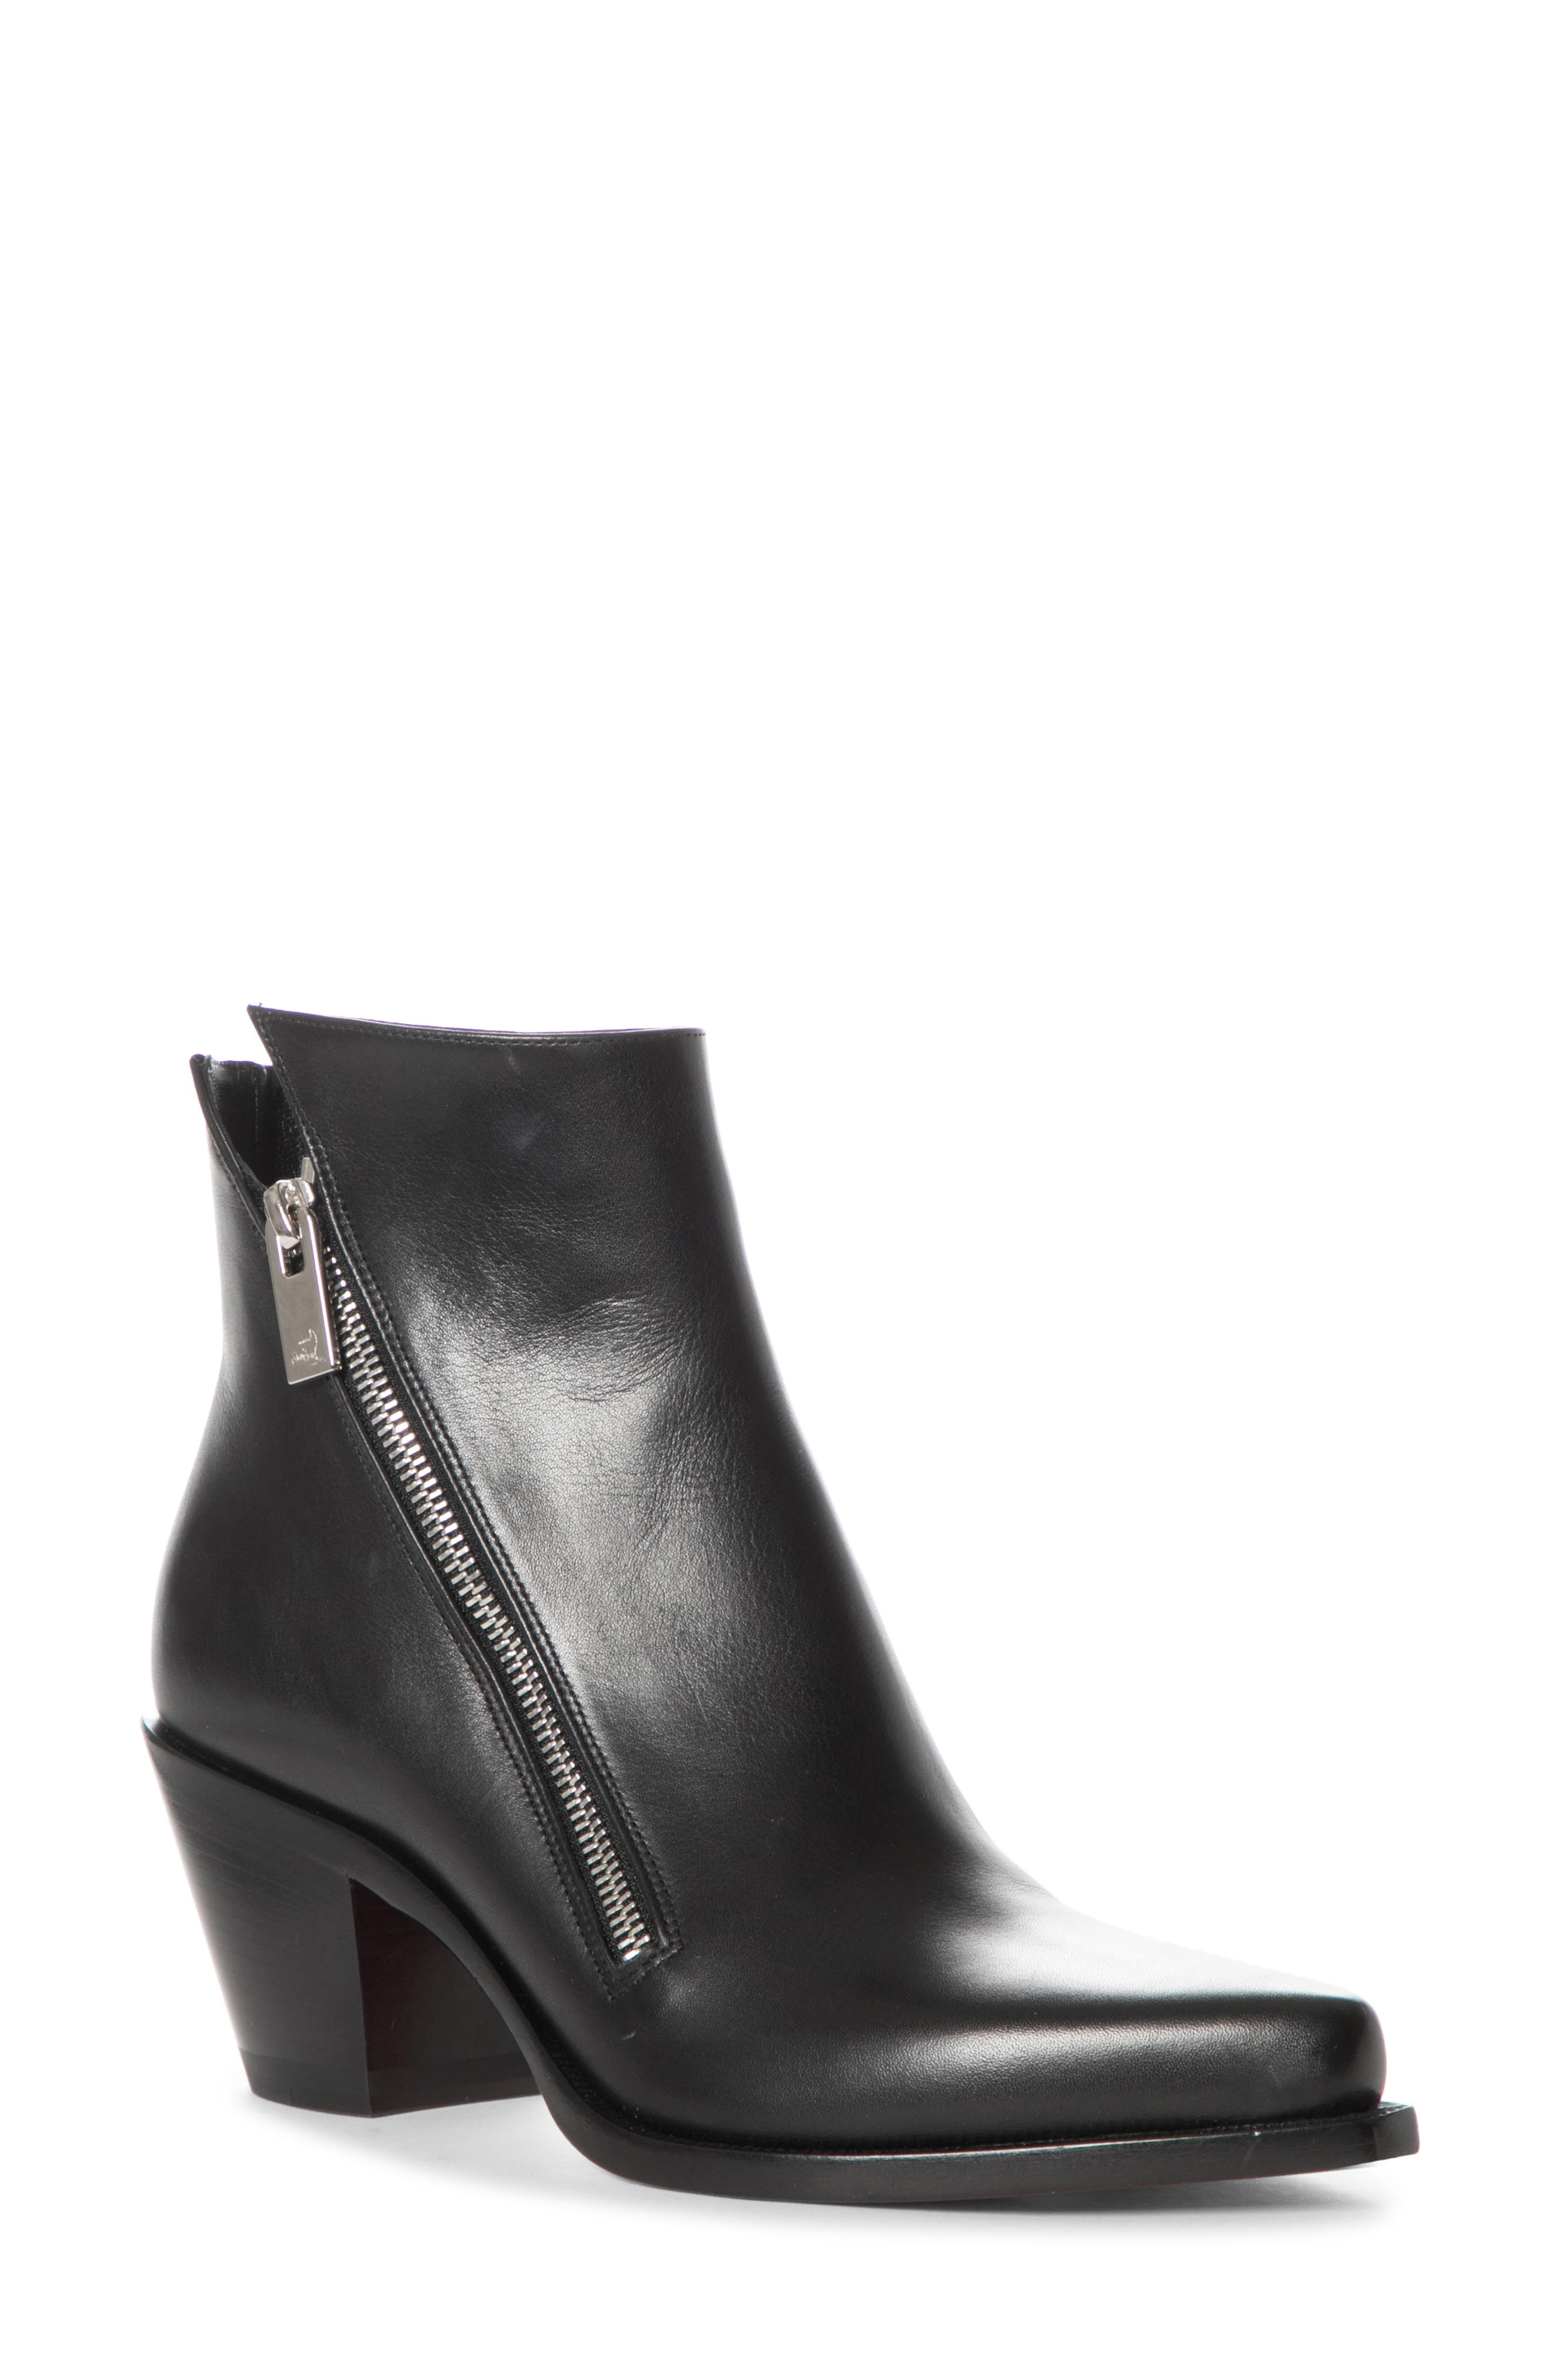 The blunted toe and angled heel are inspired by Western style, but this sleek leather bootie goes to the city with a sharply notched topline and an exposed zip. Style Name: Christian Louboutin Santia Zip Bootie (Women). Style Number: 6046871. Available in stores.